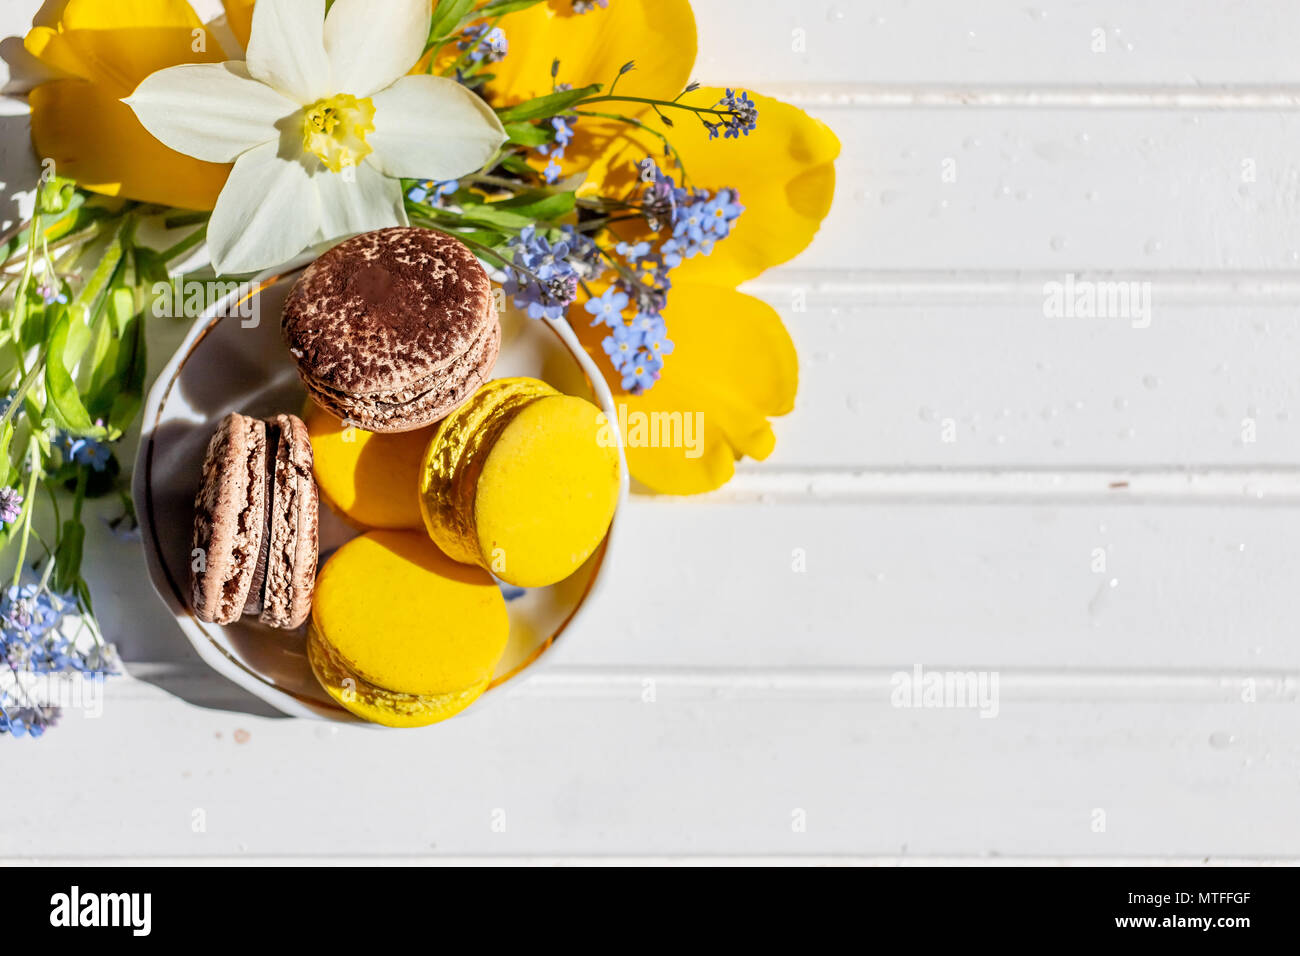 macarons or macaroons dessert sweet beautiful to eat. chocolate and lemon desserts on a white wooden table.Tasty dessert flat lay and daffodils and forget-me-not flowers. - Stock Image